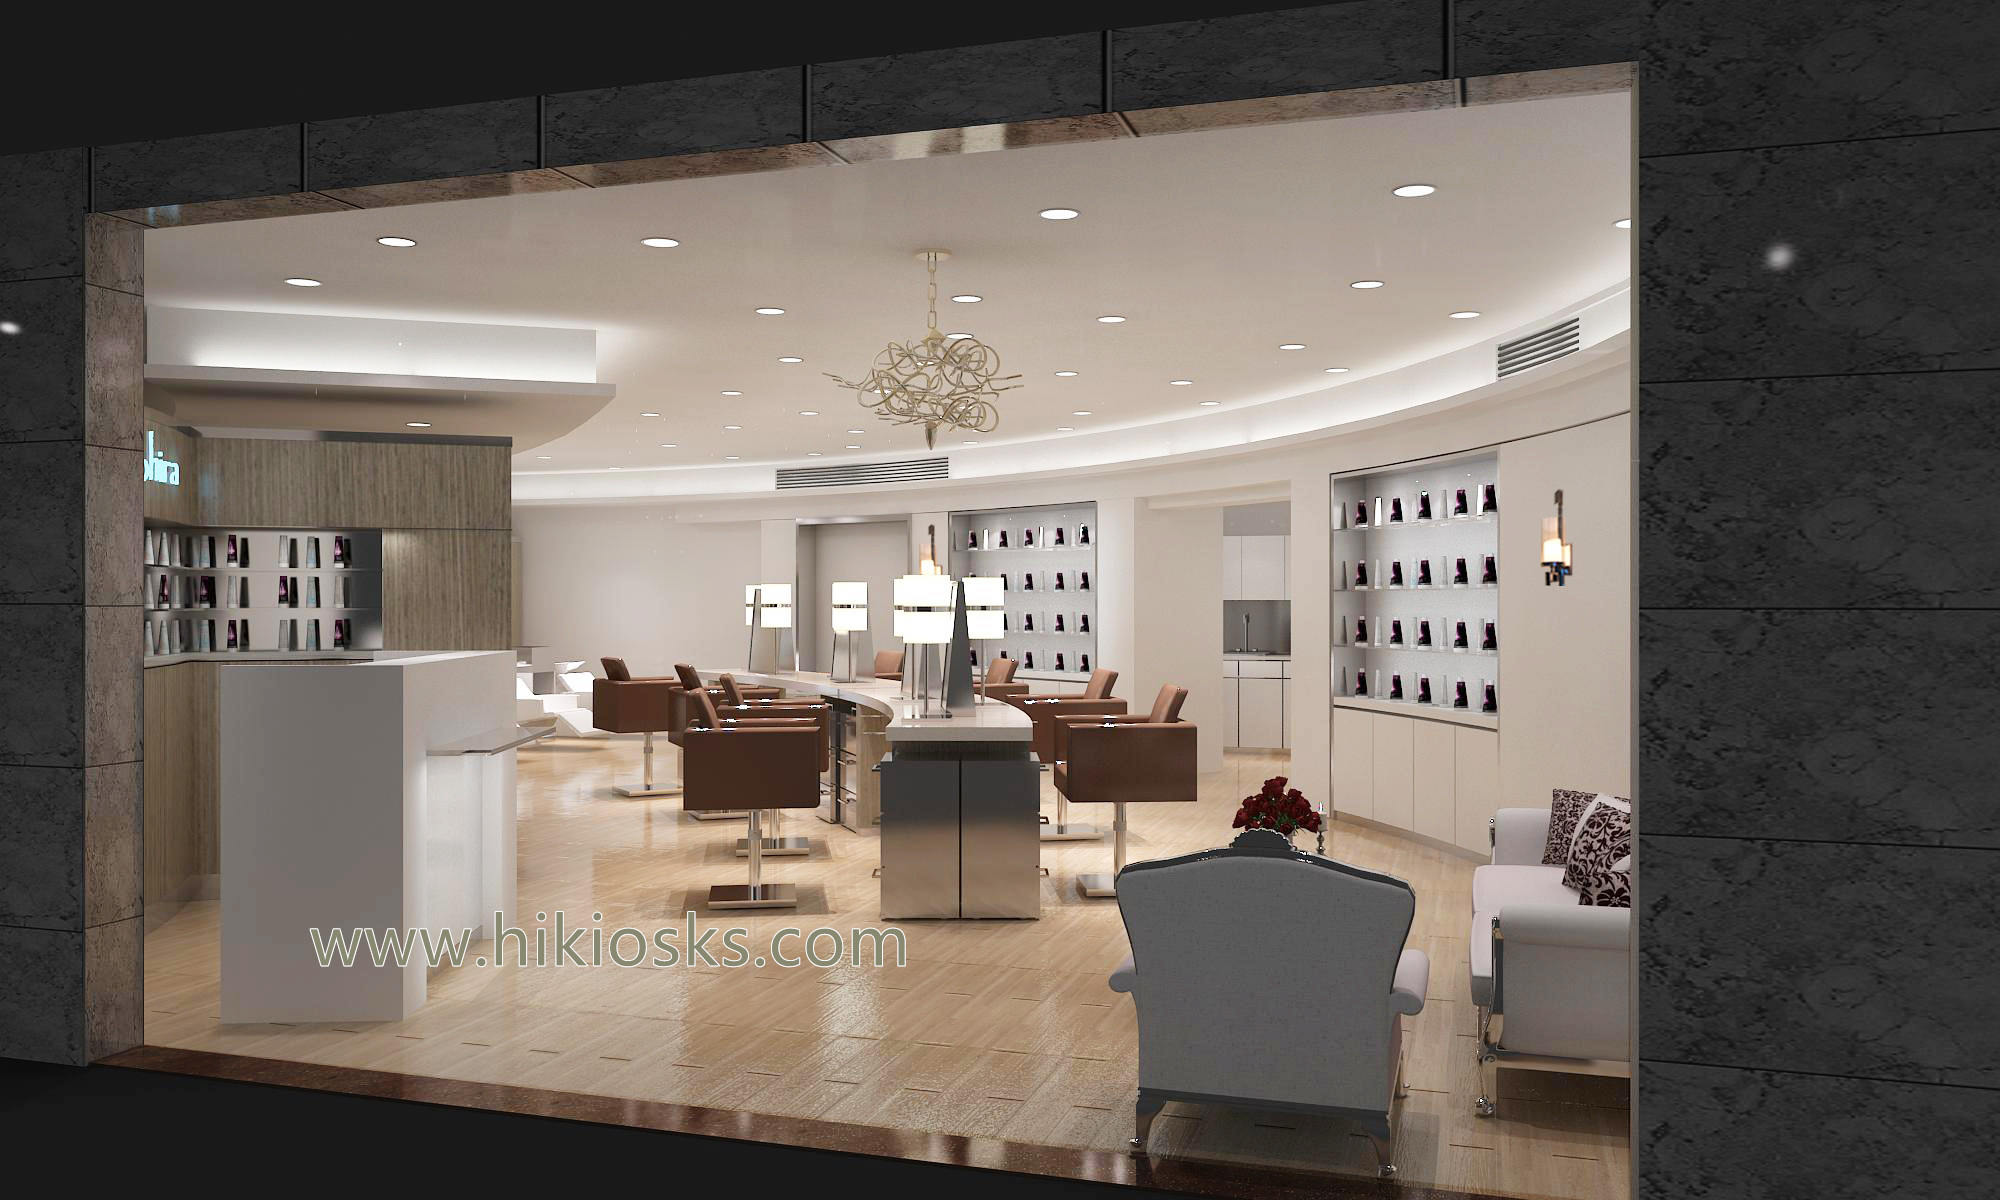 beauty salon interior design ideas hairdressing salon design ideas interior barber shop design ideas beauty salon